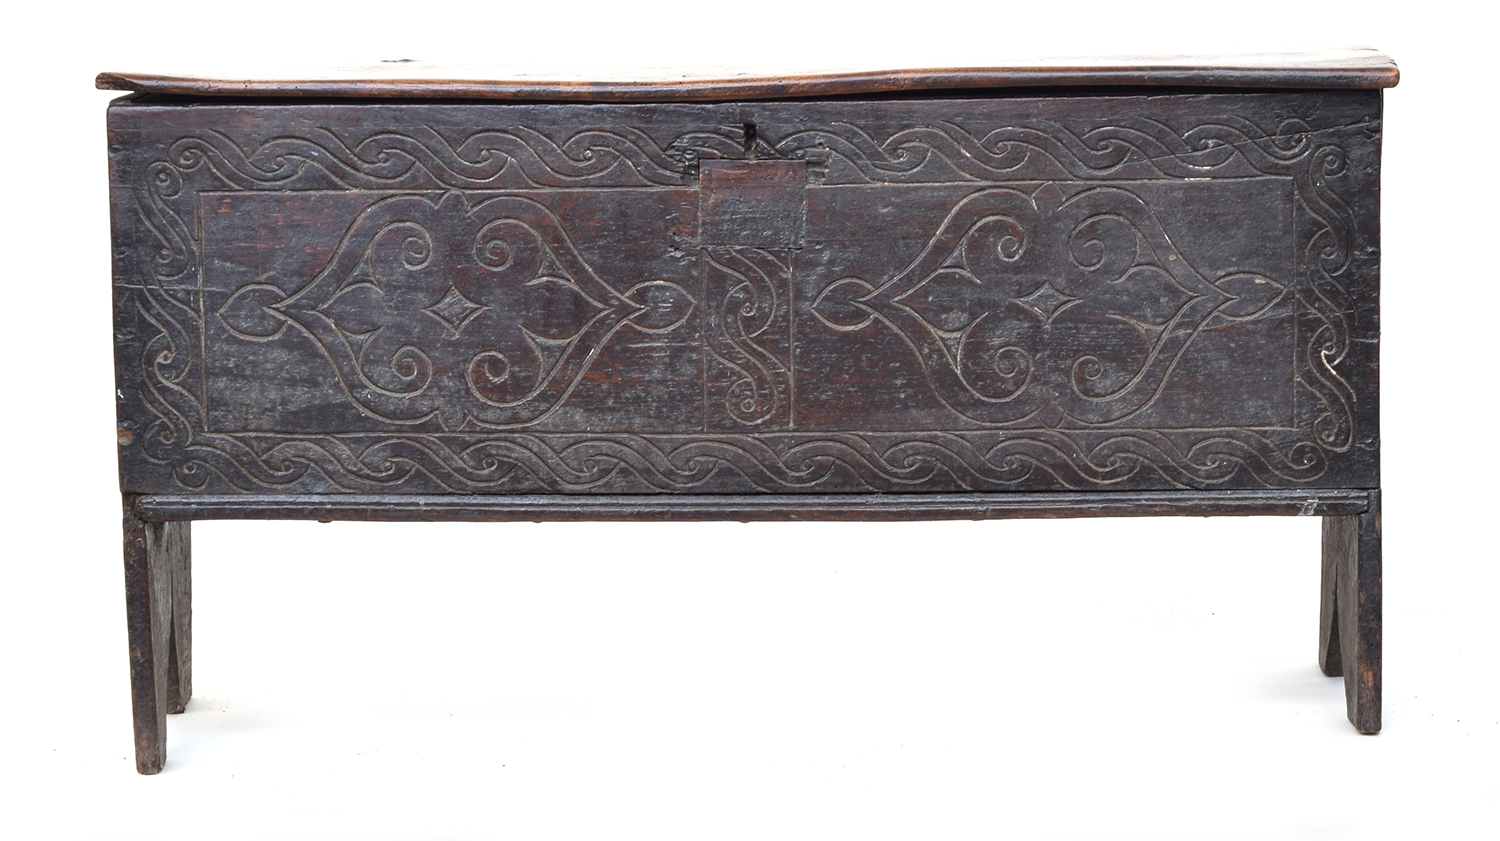 A 17th century vernacular six plank elm and oak coffer, with cut-in feet to the end boards, 103cm